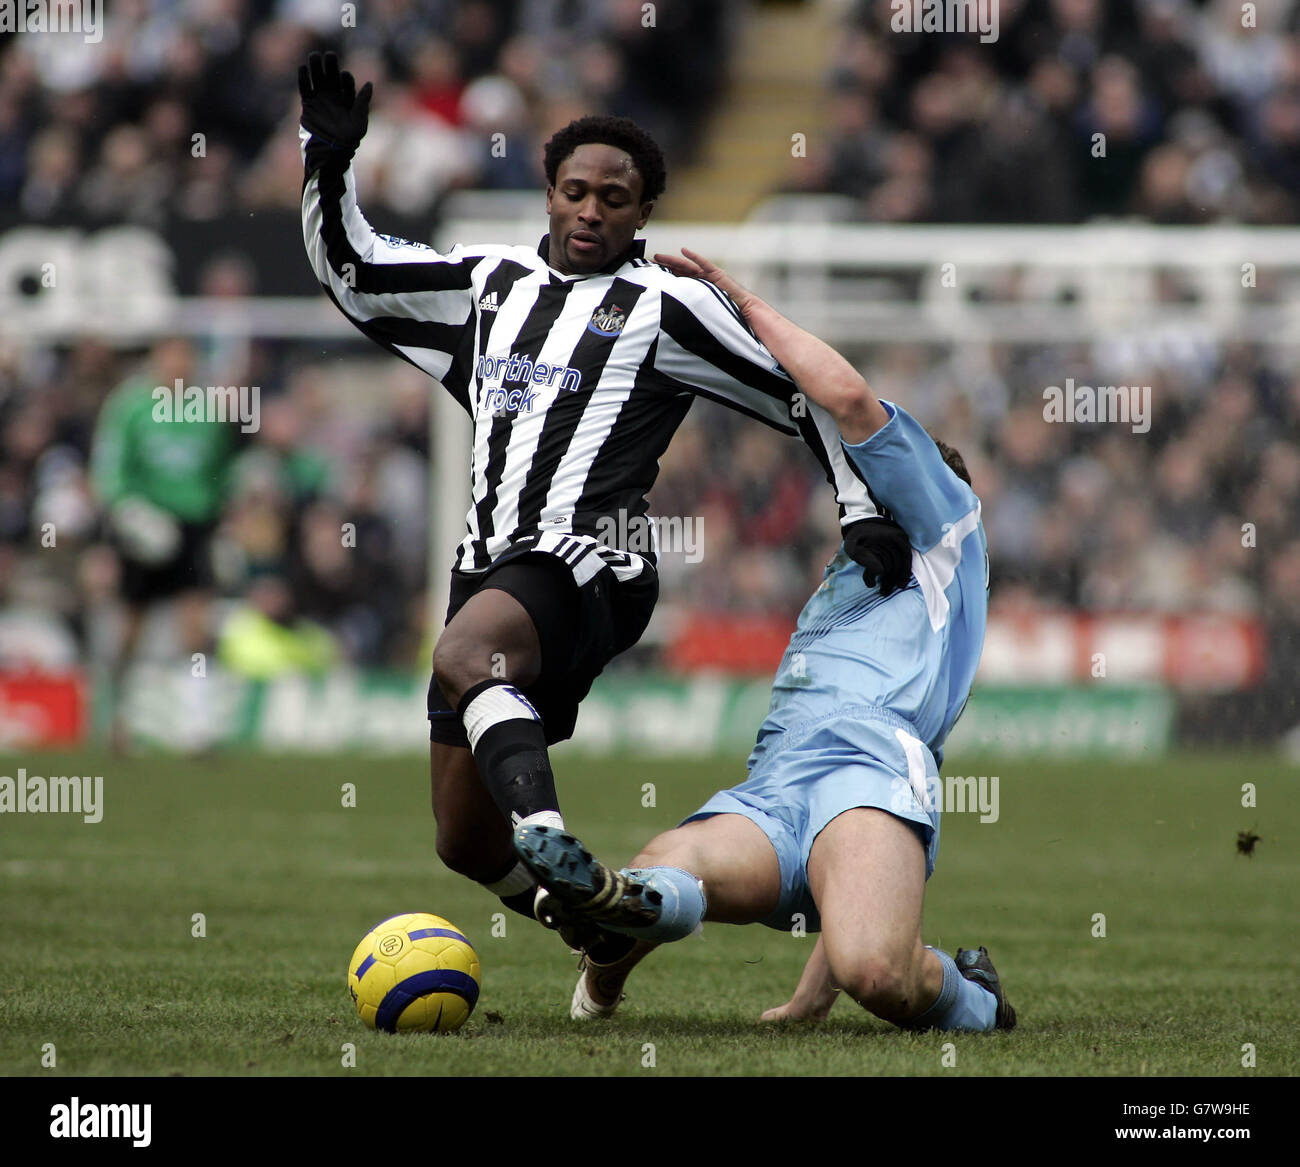 Soccer - FA Barclays Premiership - Newcastle United v Bolton Wanderers - St James' Park - Stock Image